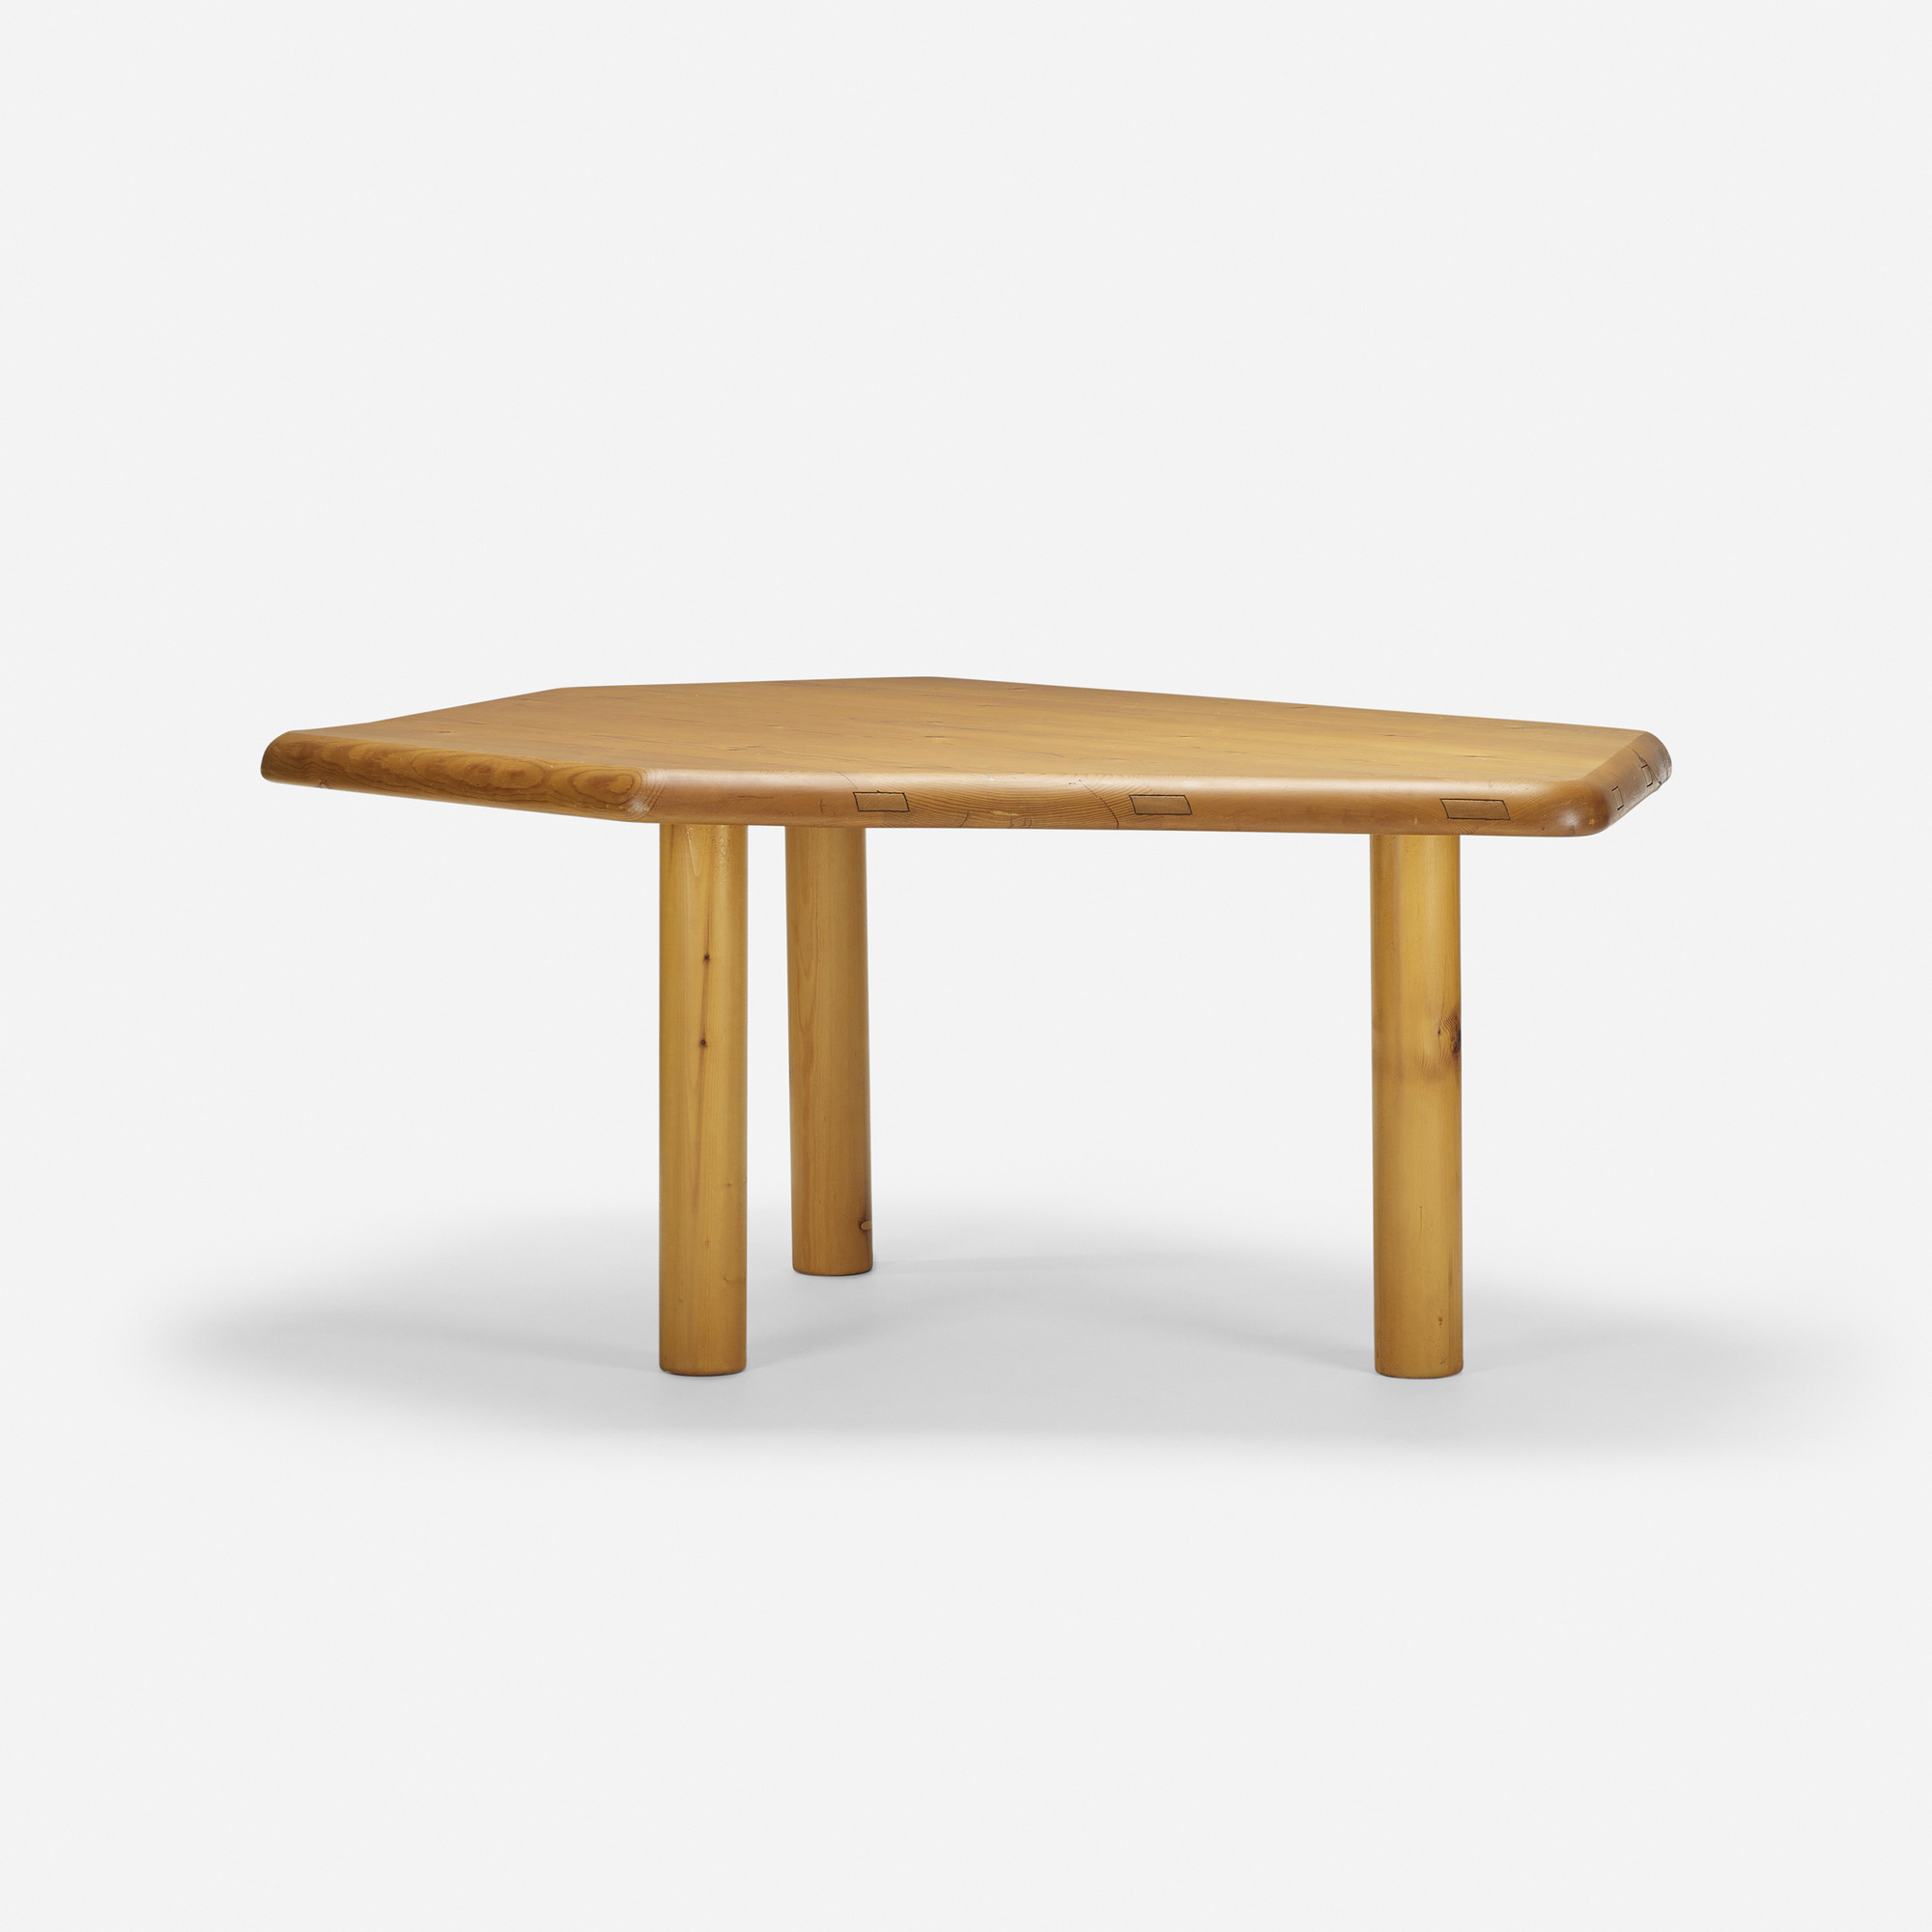 128 in the manner of charlotte perriand dining table for Dining table design 2015